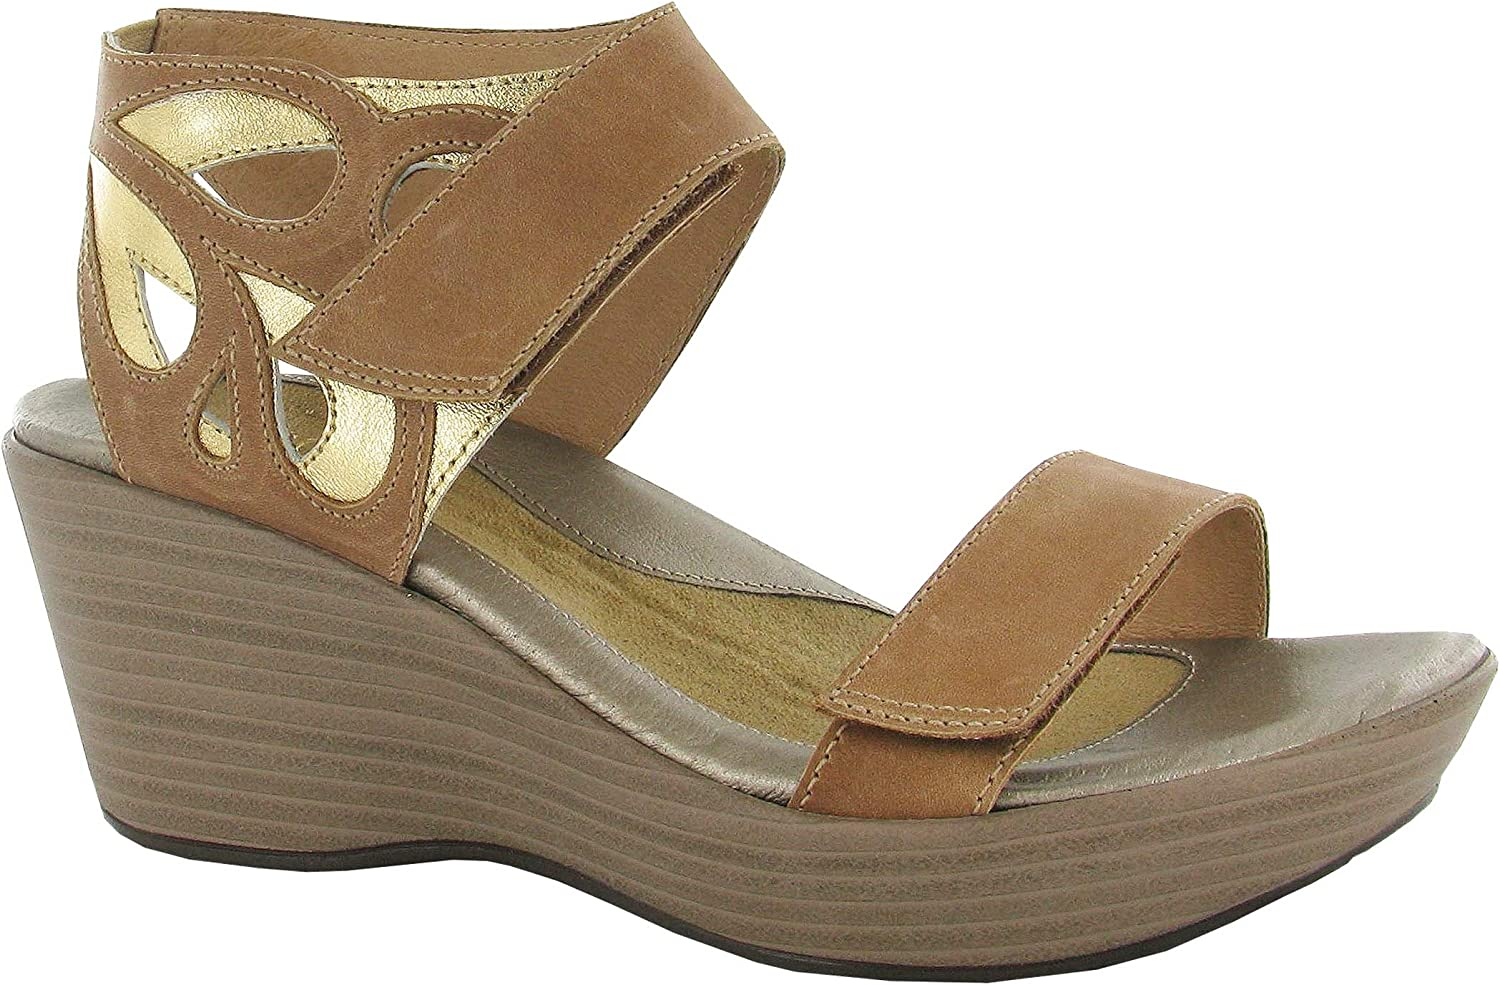 Naot Women's, Intrigue Mid Heel Wedge Sandal BROWN 4 M